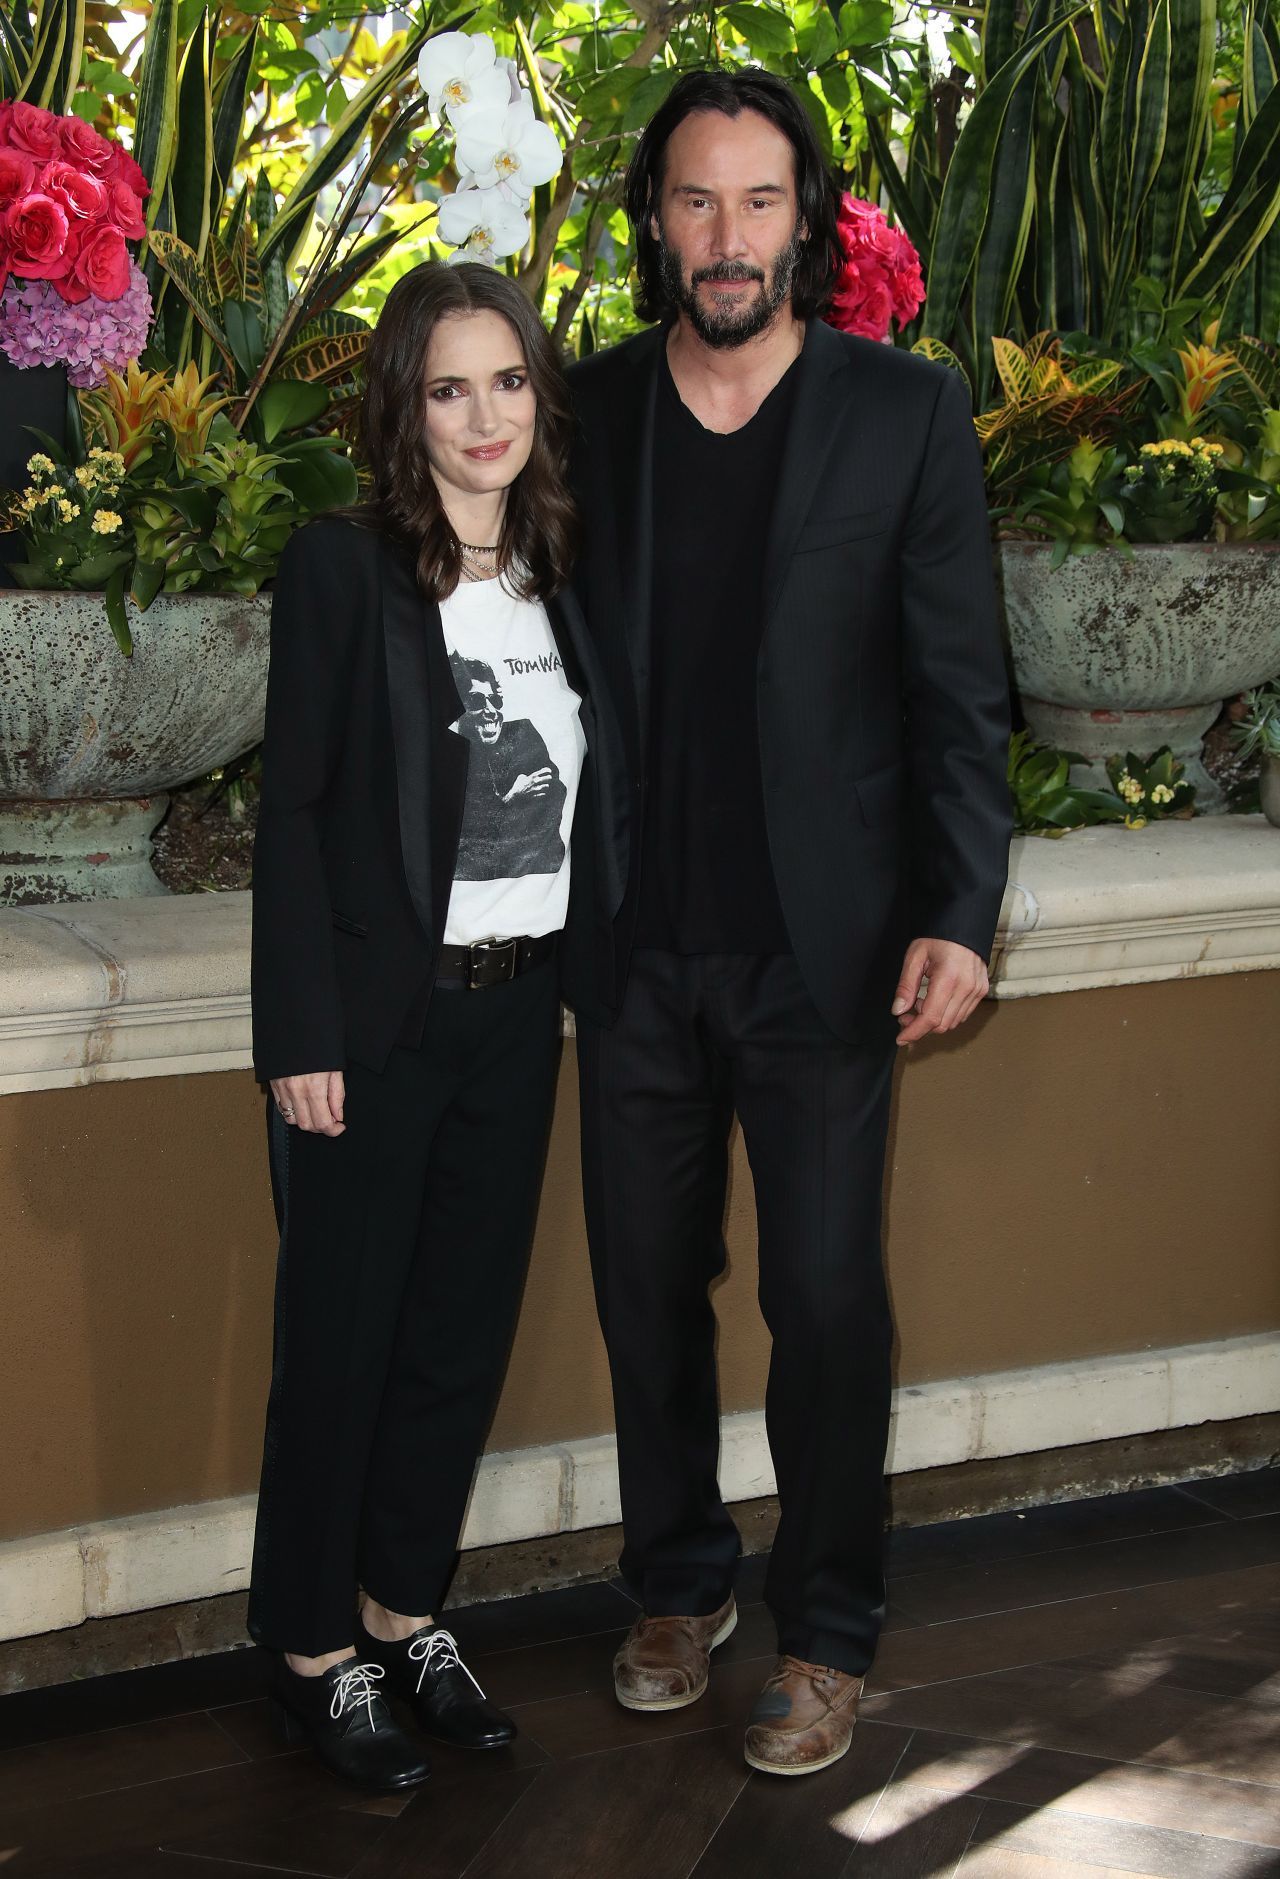 winona ryder and keanu reeves destination wedding photo call in beverly hills. Black Bedroom Furniture Sets. Home Design Ideas